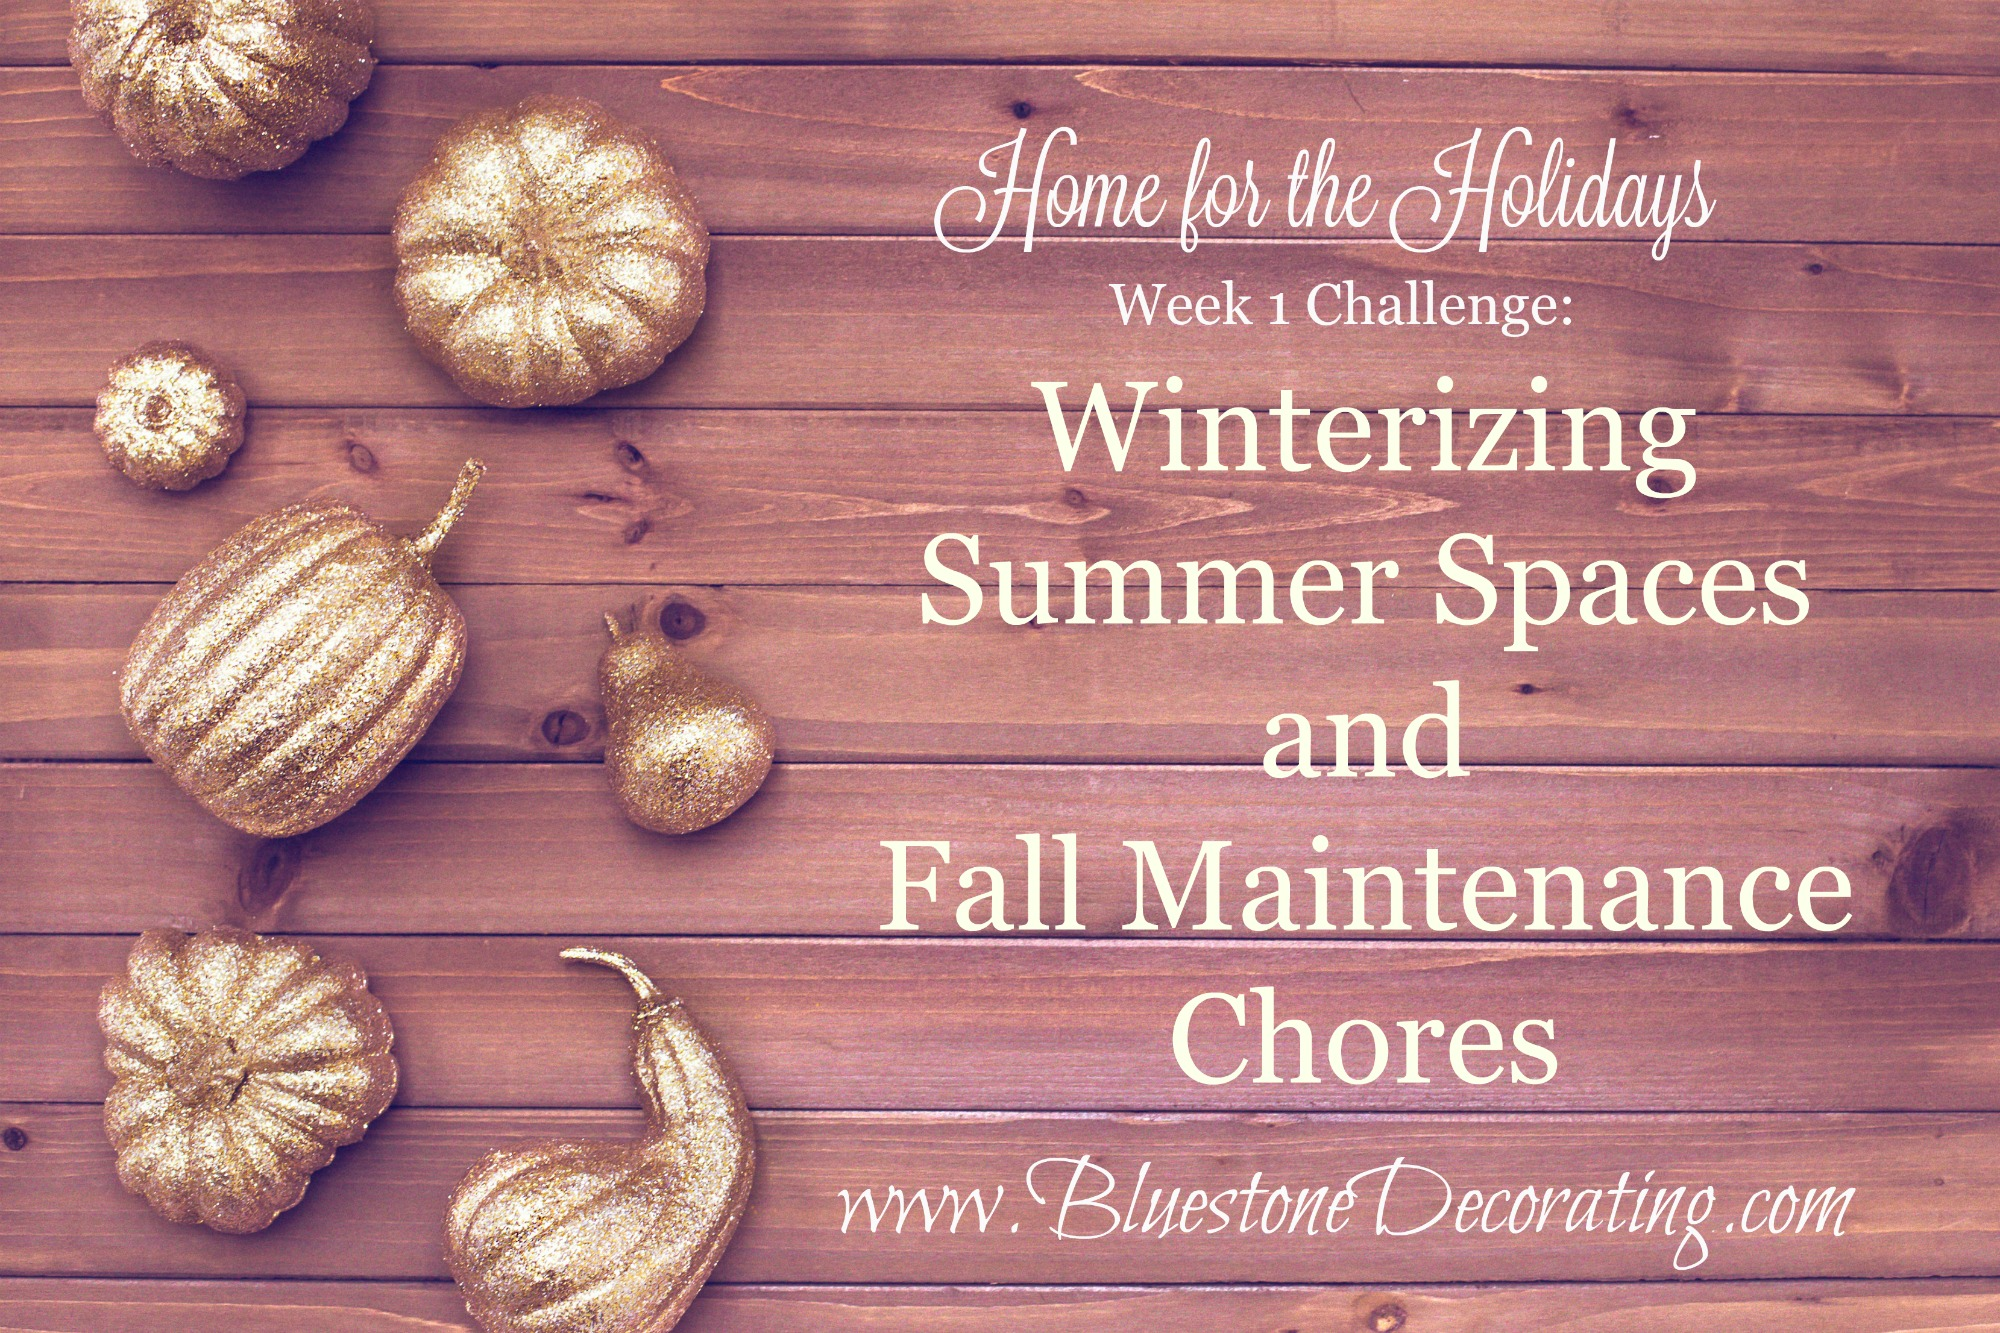 Winterizing Summer Spaces and Fall Maintenance Chores - Home for the Holidays Challenge Week 1